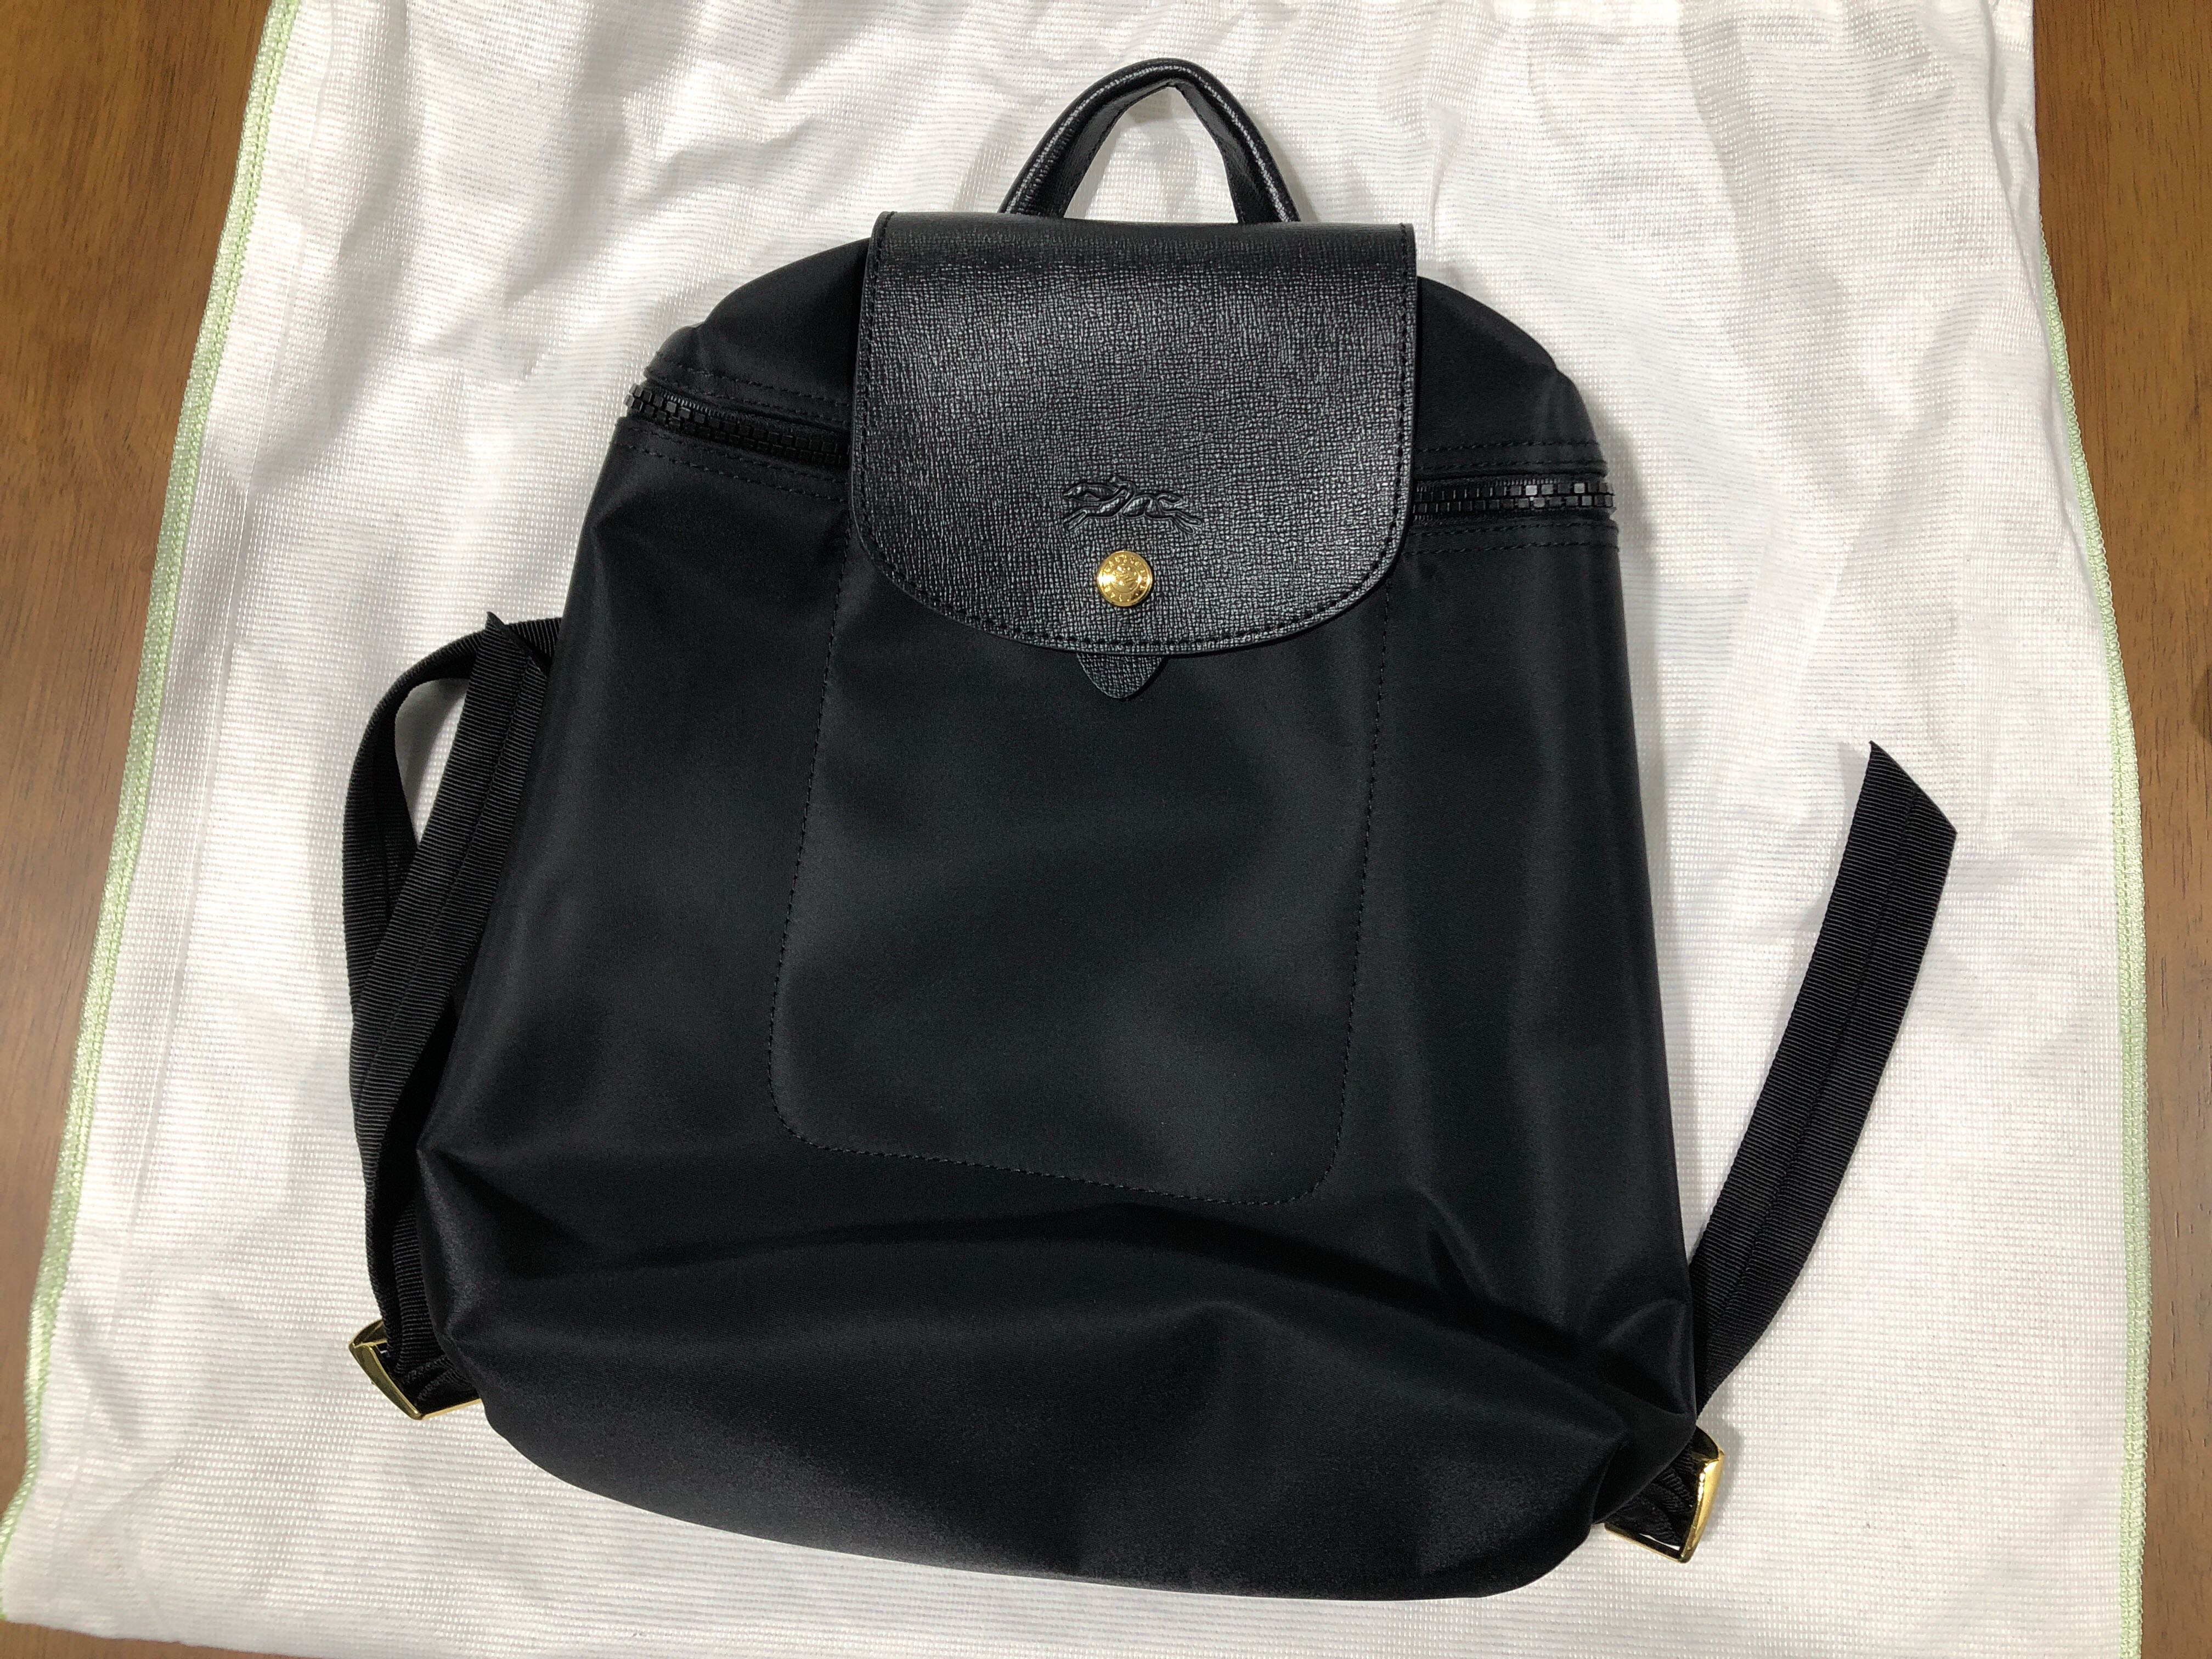 e35aaebbd6a9 Authentic black longchamp backpack